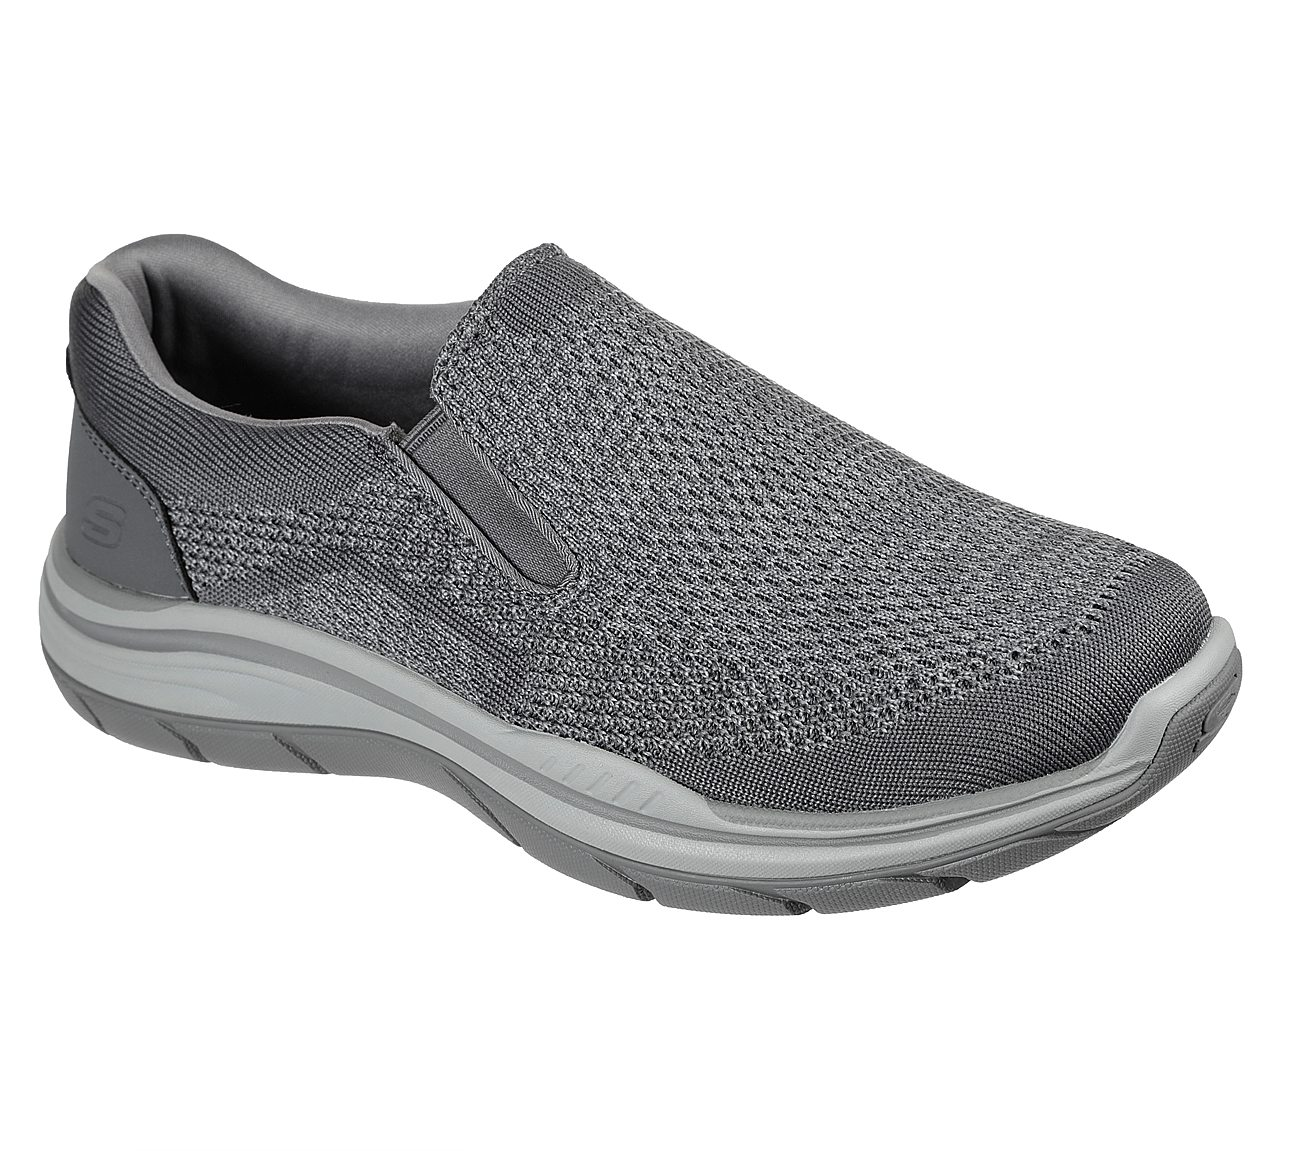 Skechers Relaxed Fit: Expected 2.0